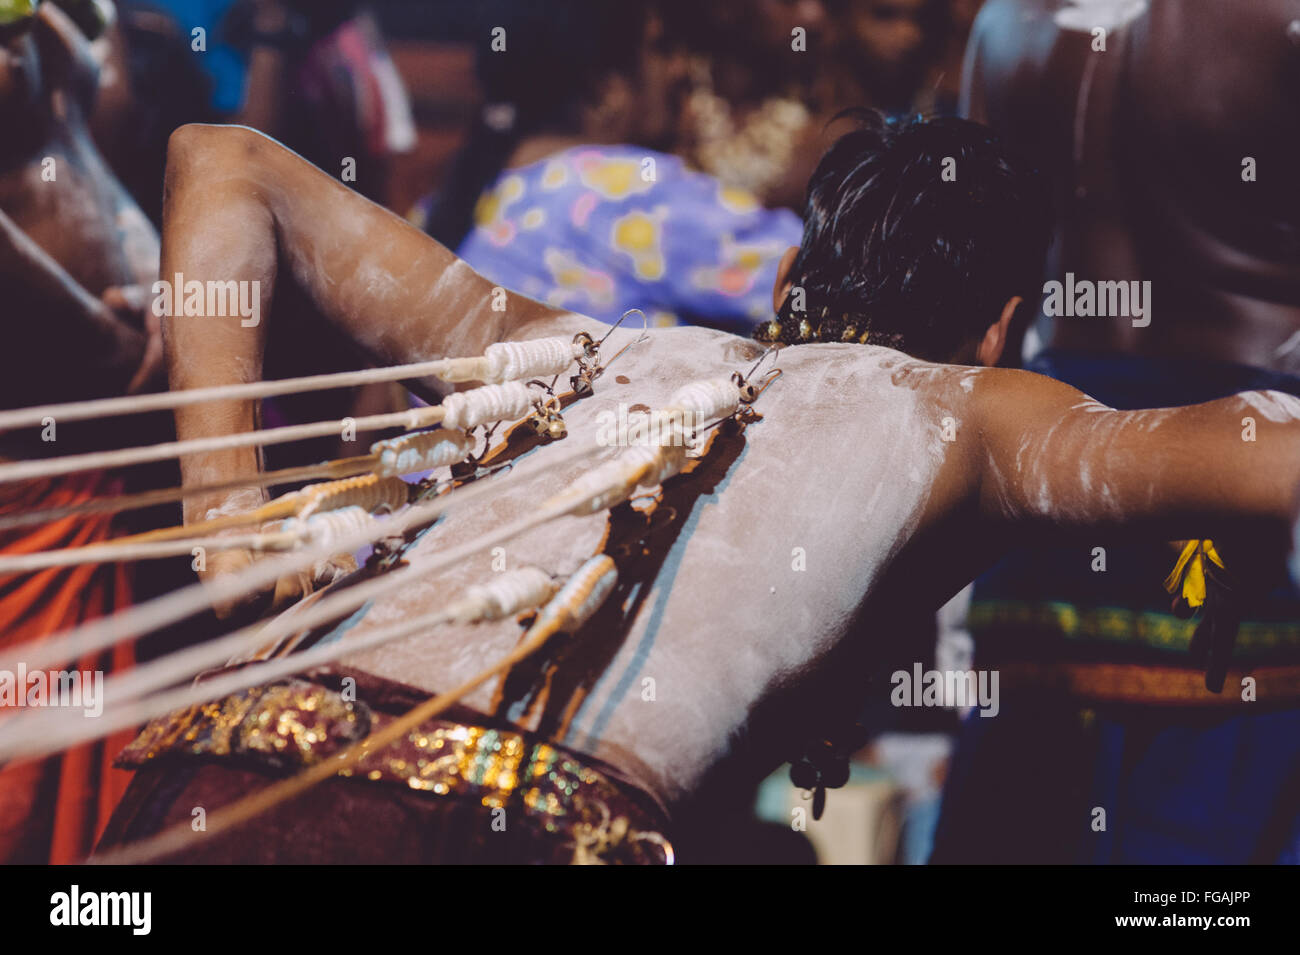 Hook With Rope Pierced On Back Of Man During Traditional Ceremony - Stock Image